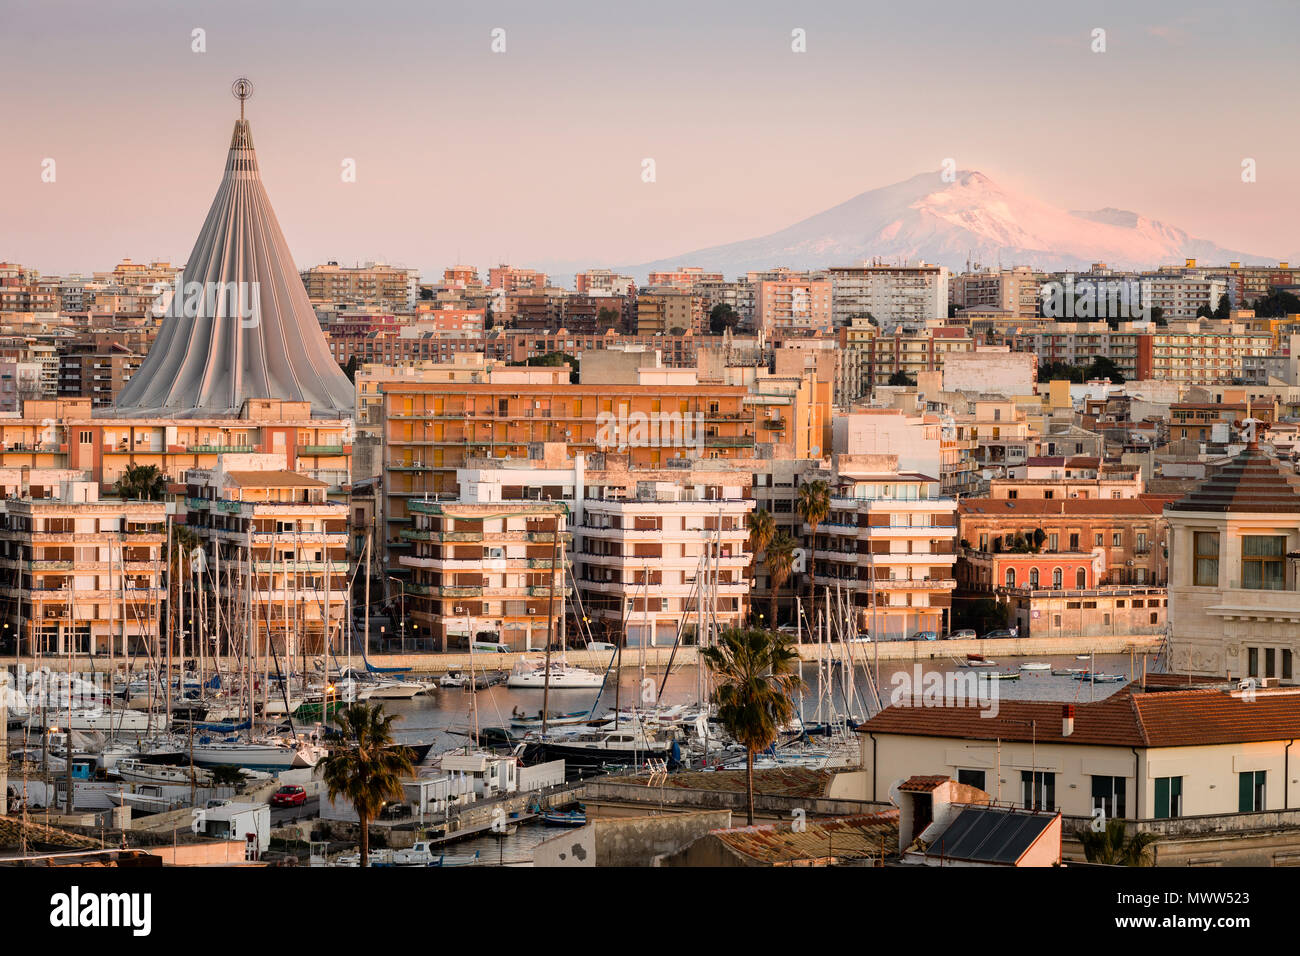 The city of Siracusa with Mount Etna on the background, Sicily, Italy - Stock Image